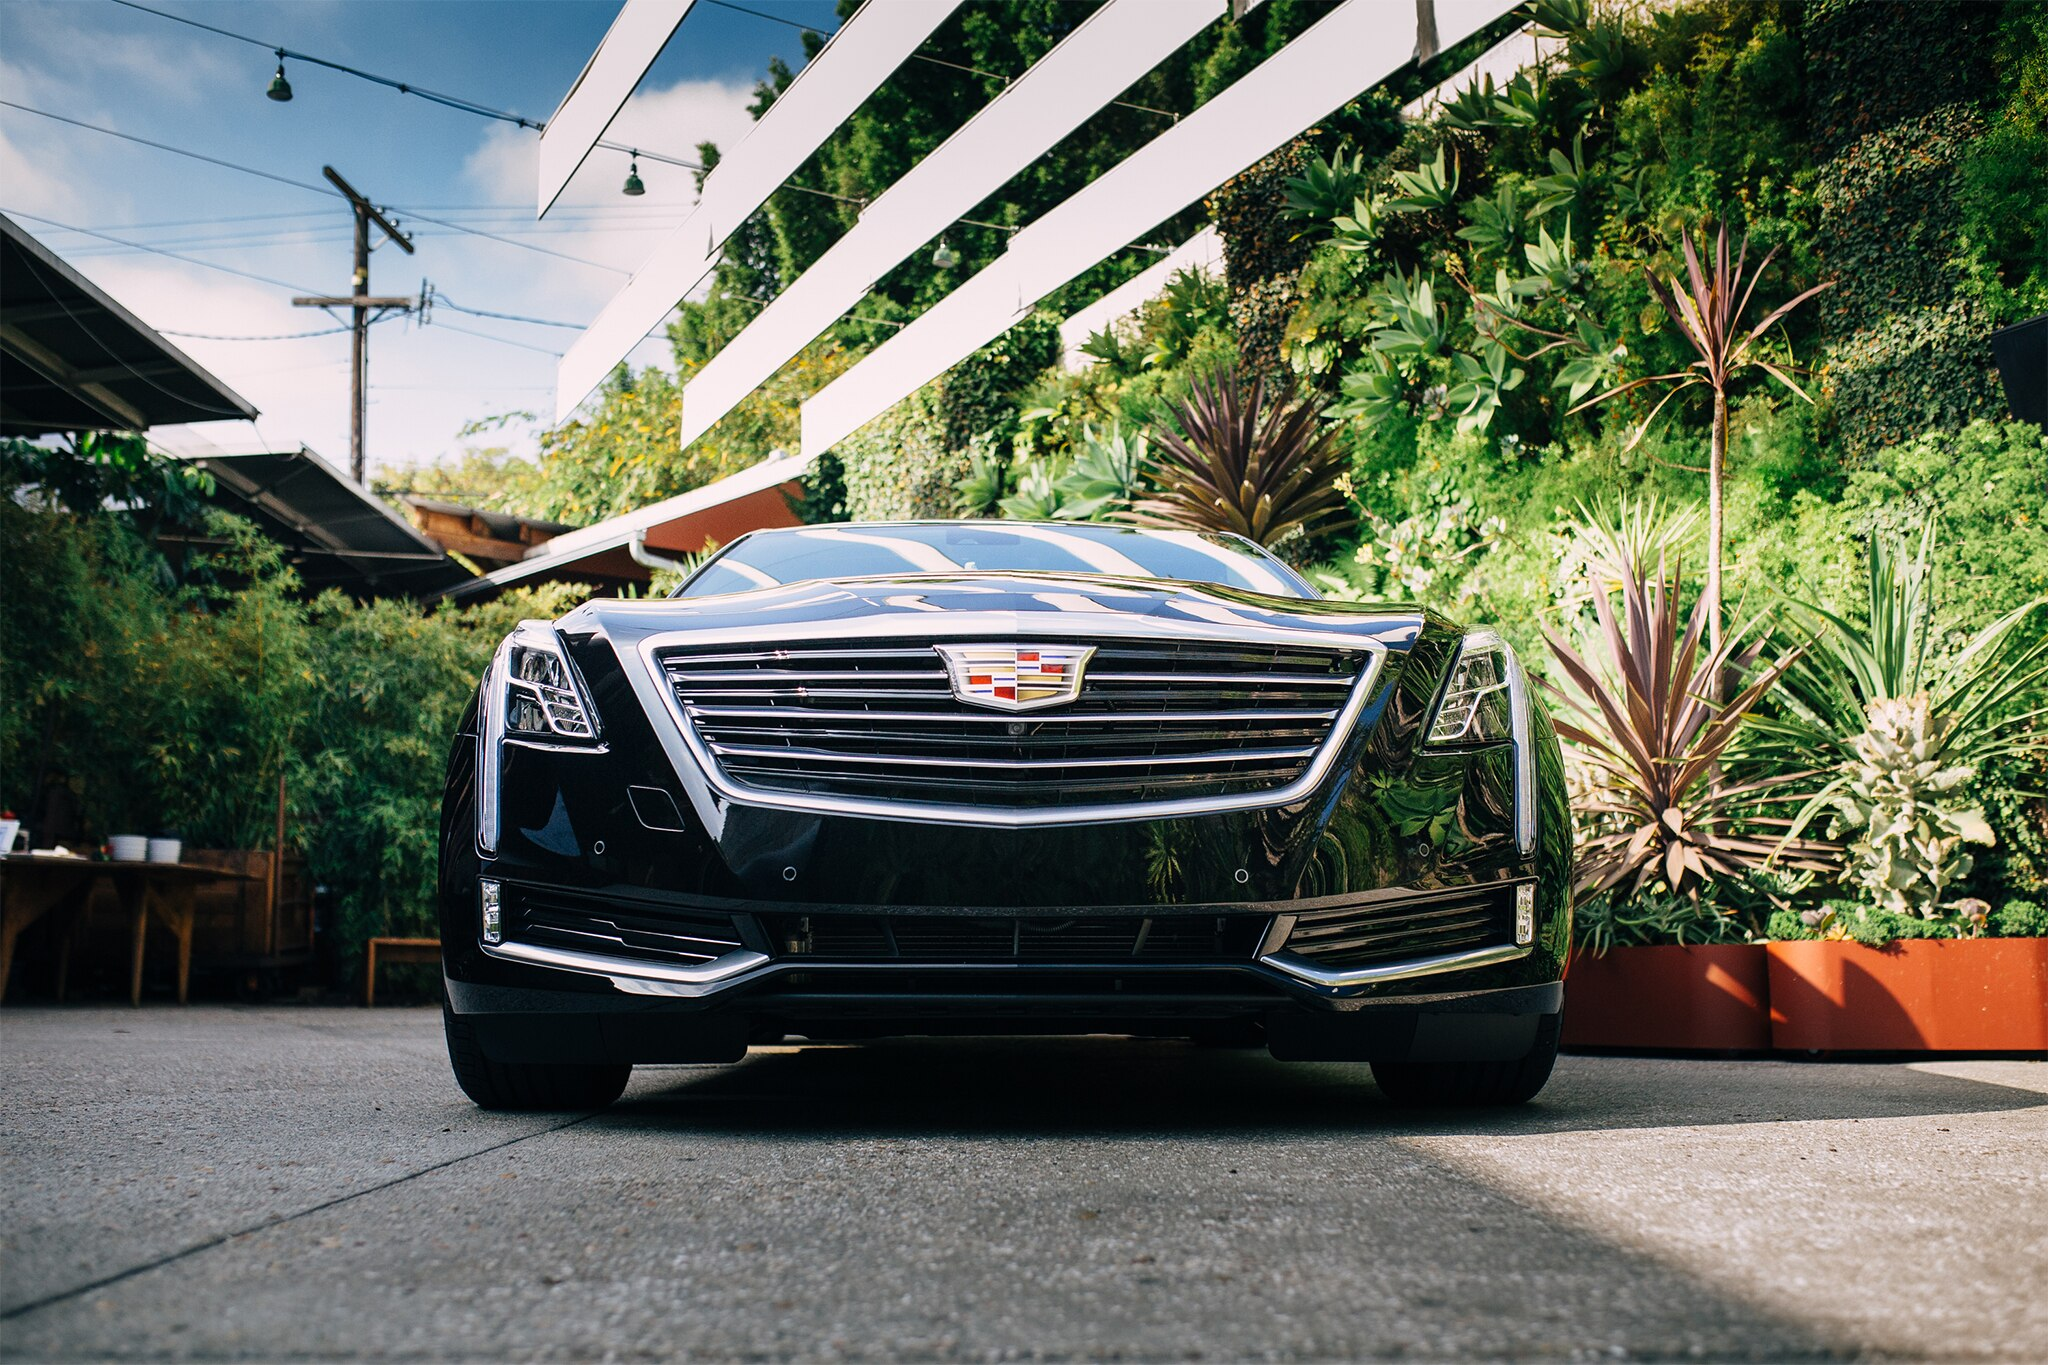 2017 cadillac ct6 plug in hybrid first drive review automobile magazine. Black Bedroom Furniture Sets. Home Design Ideas